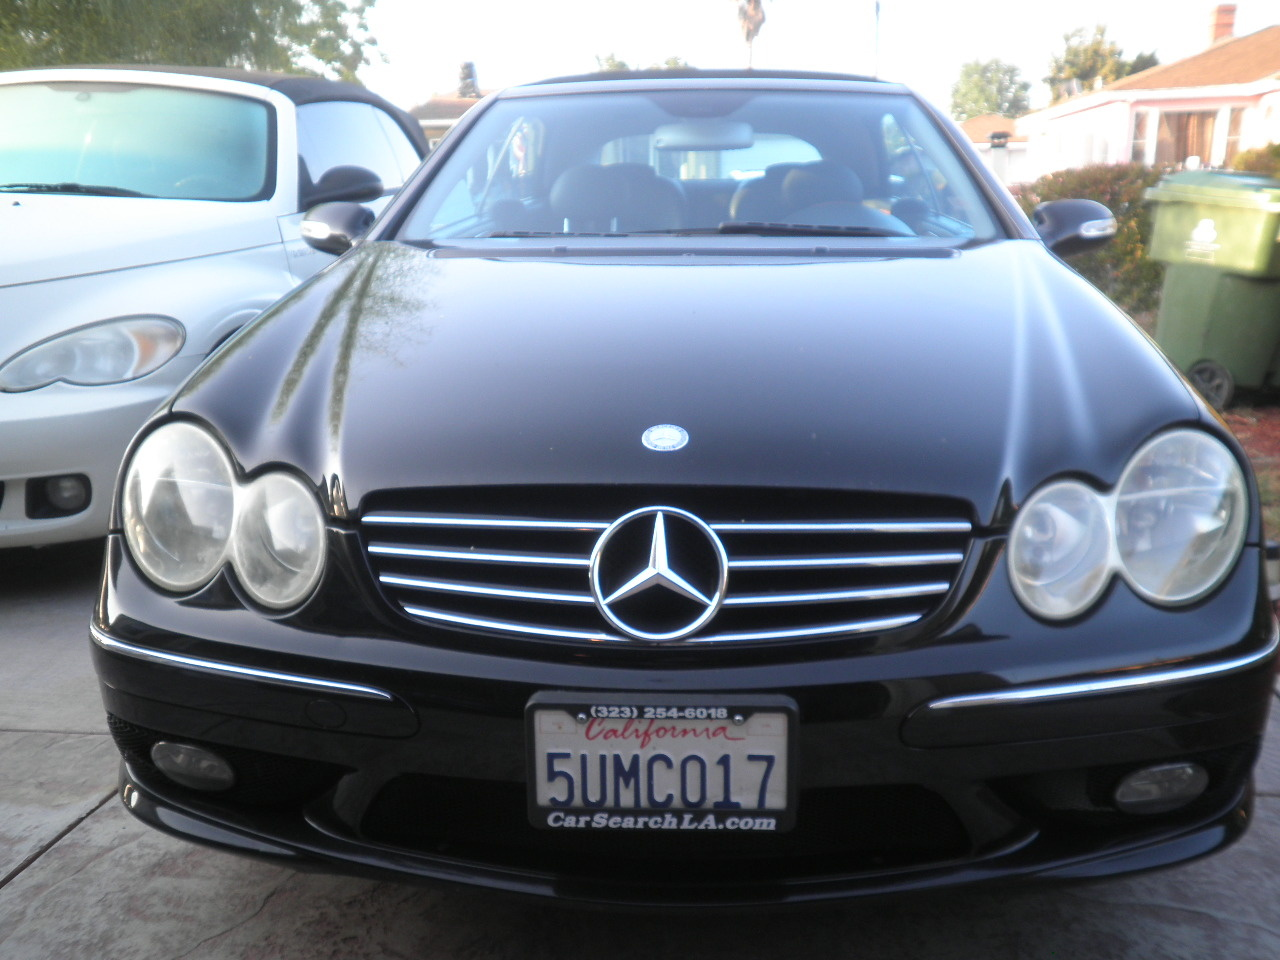 2005 mercedes benz clk class for sale cargurus for Mercedes benz 2005 for sale